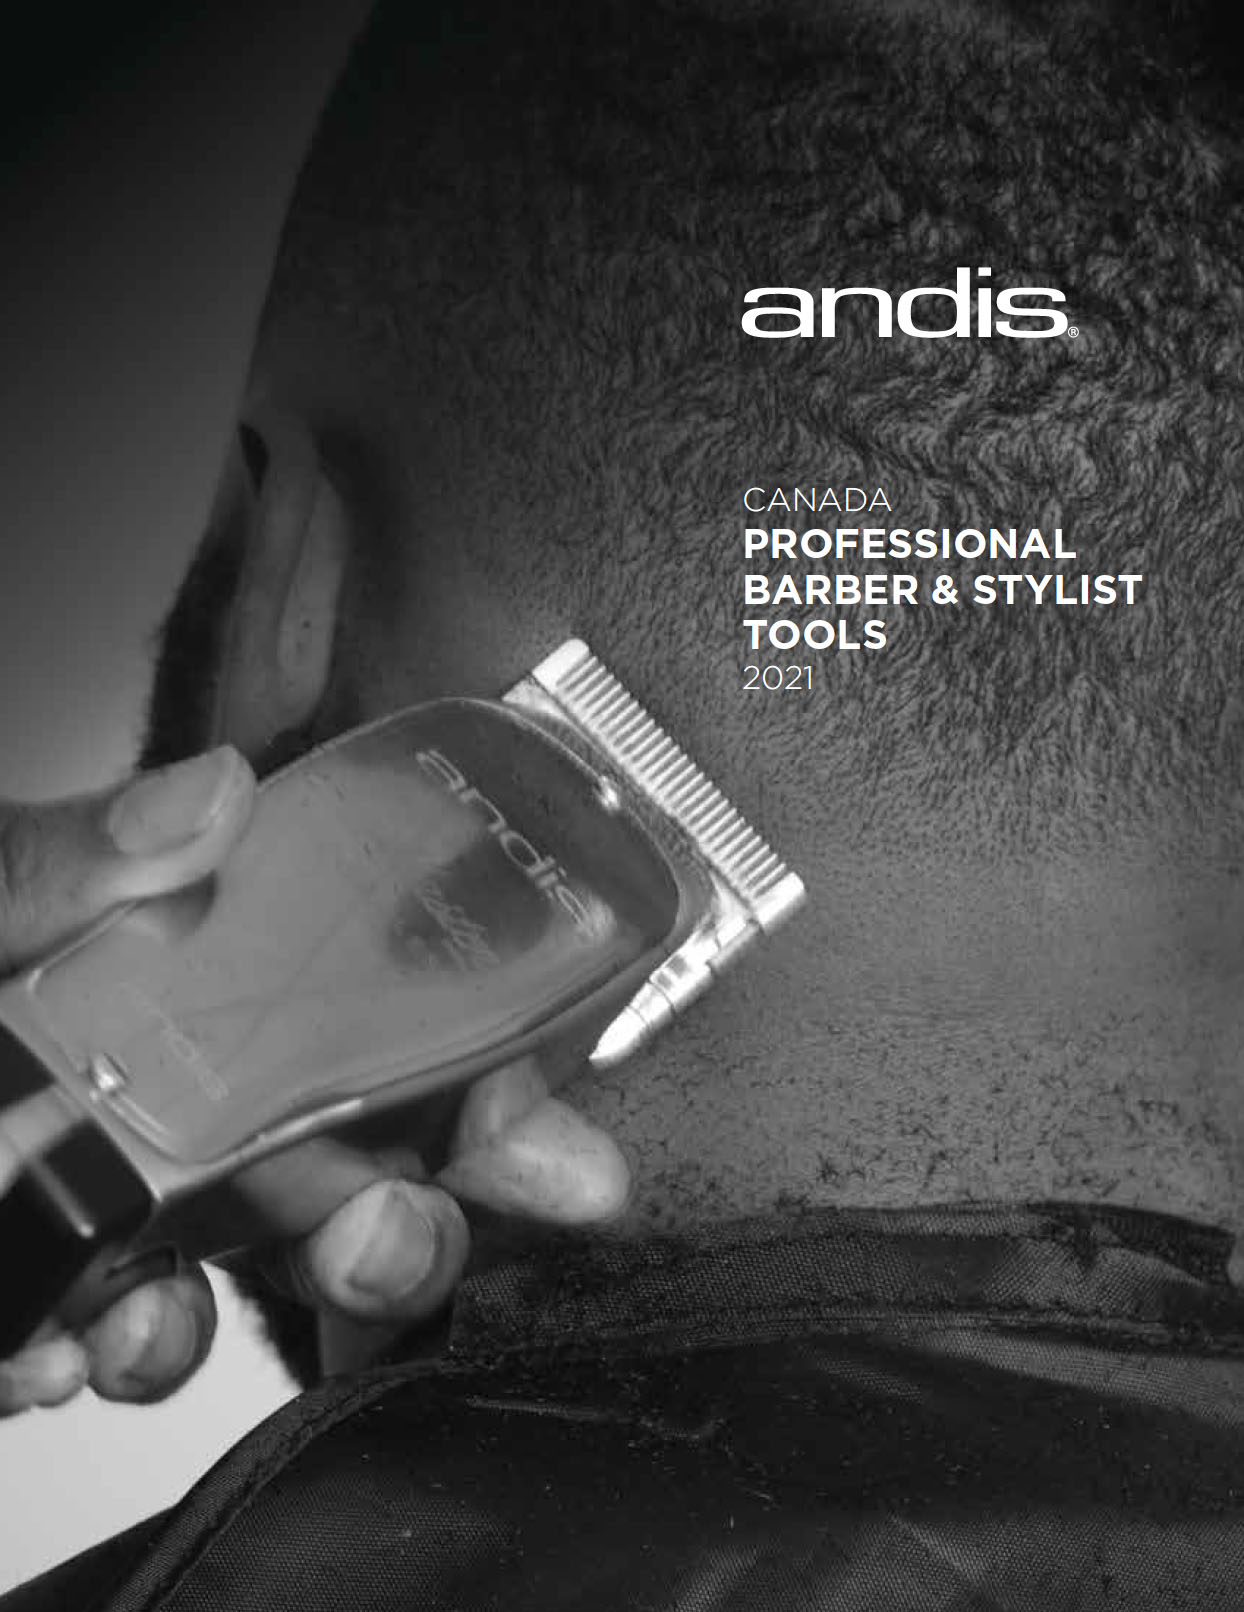 Andis Barber & Beauty Catalog - Canada